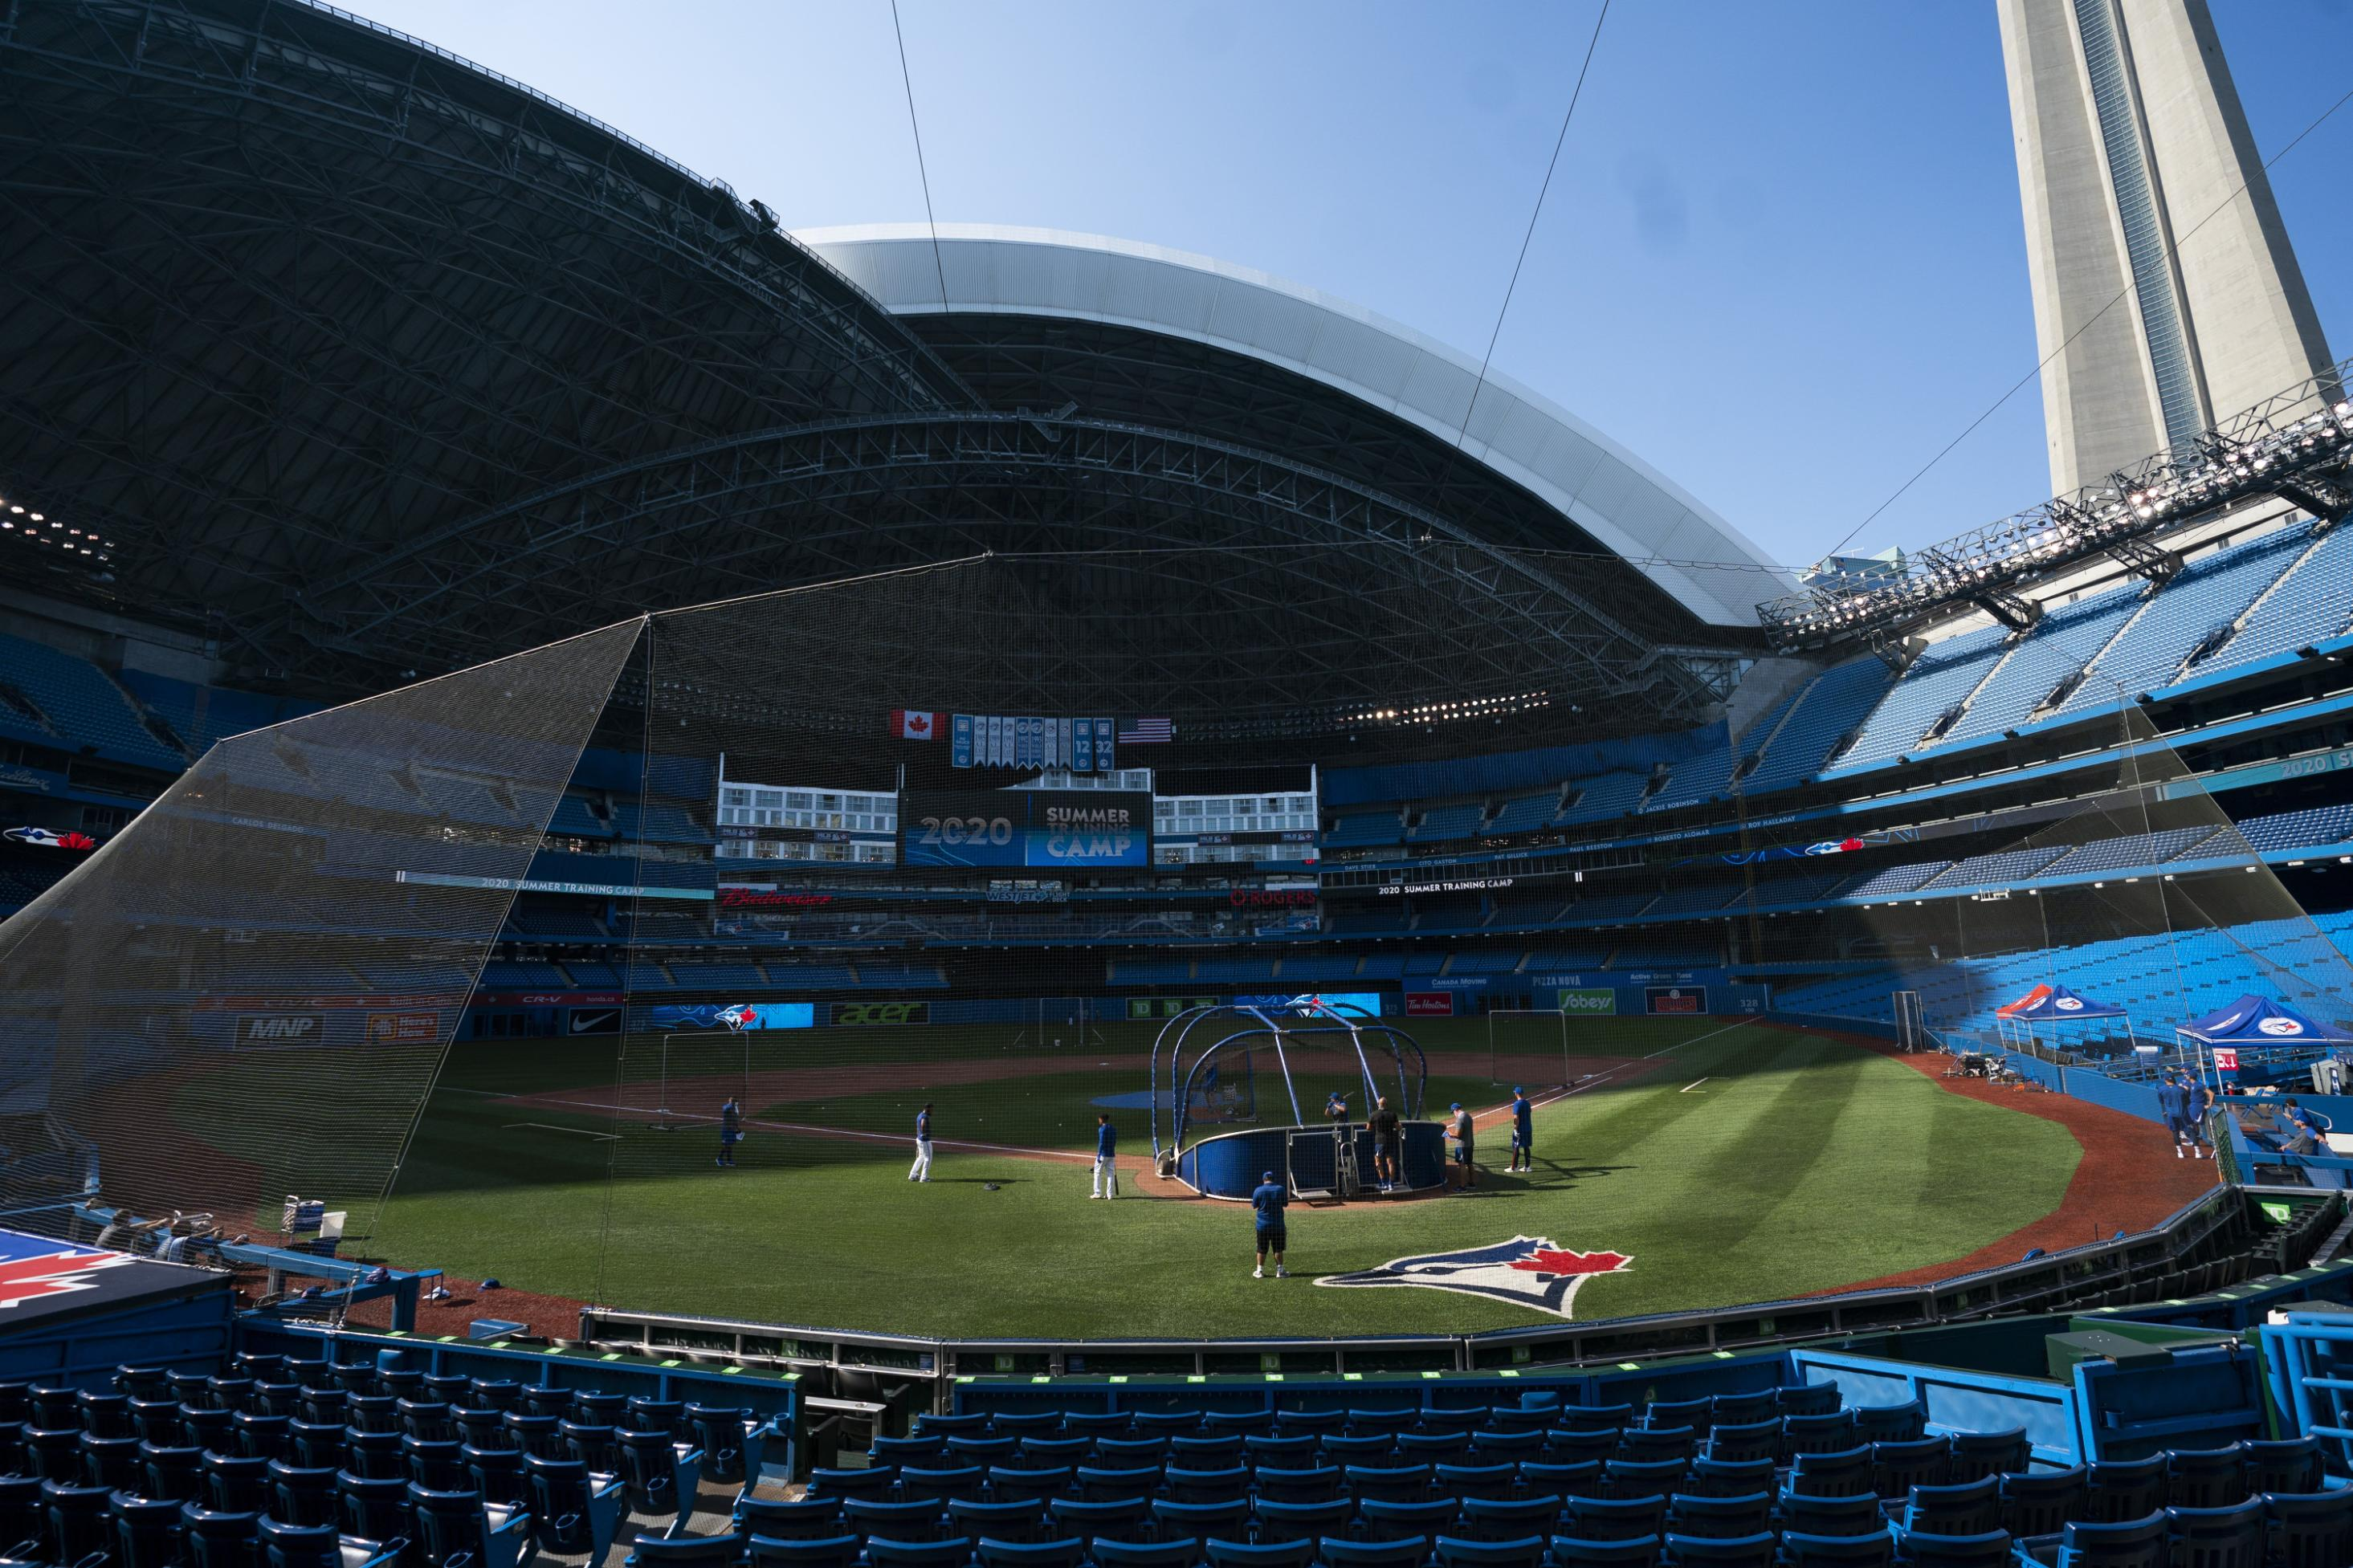 Toronto Blue Jays might have to play home games in New York or Florida